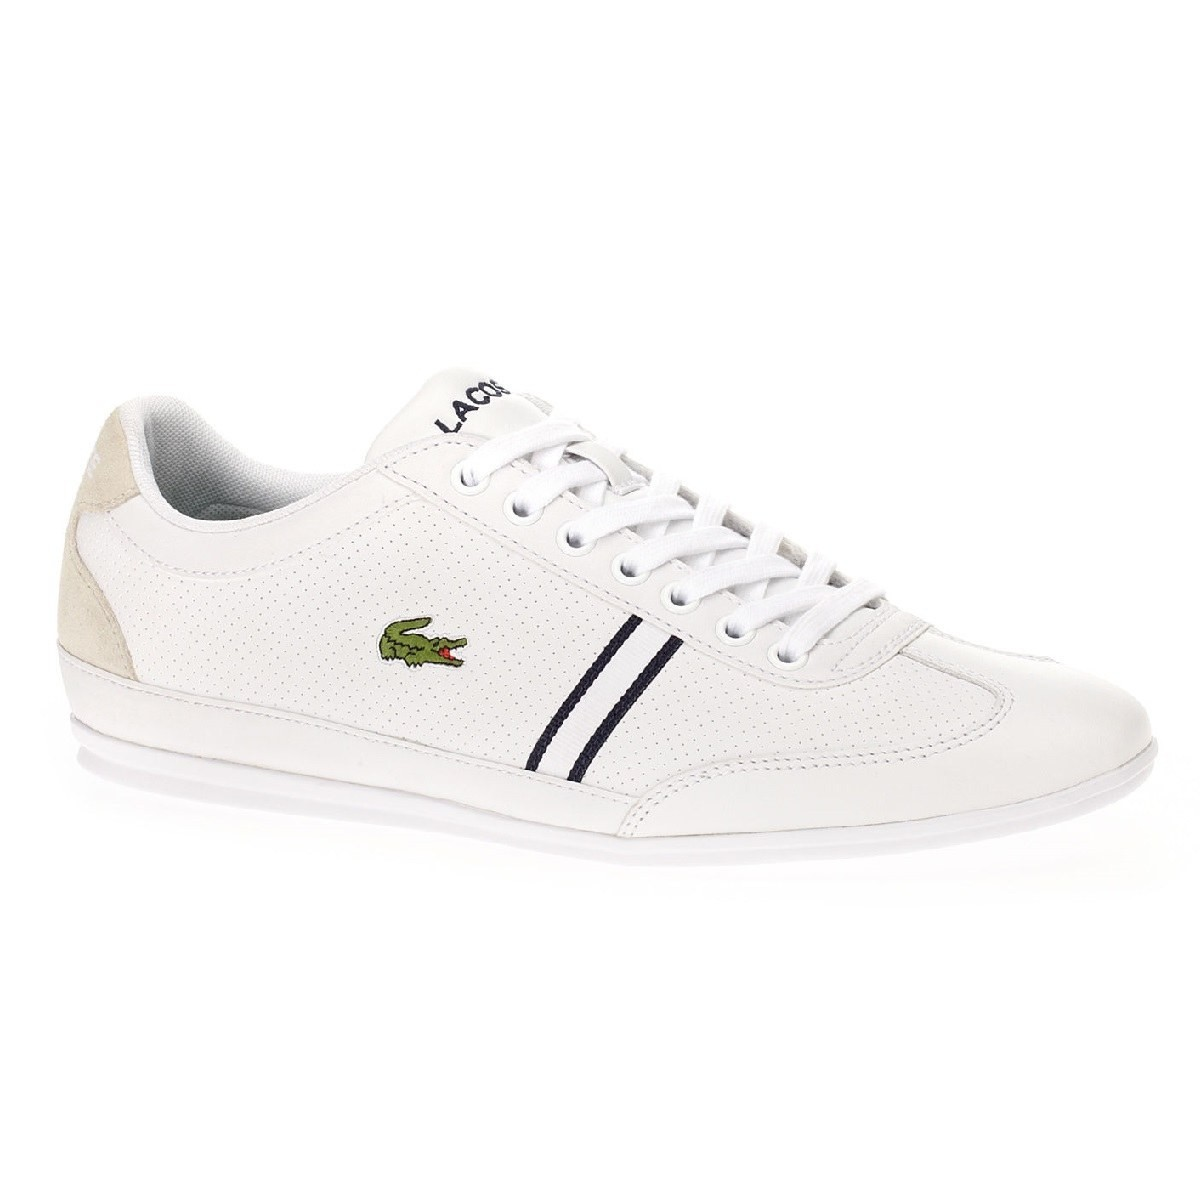 lacoste misano sport htb schuhe turnschuhe sneaker. Black Bedroom Furniture Sets. Home Design Ideas